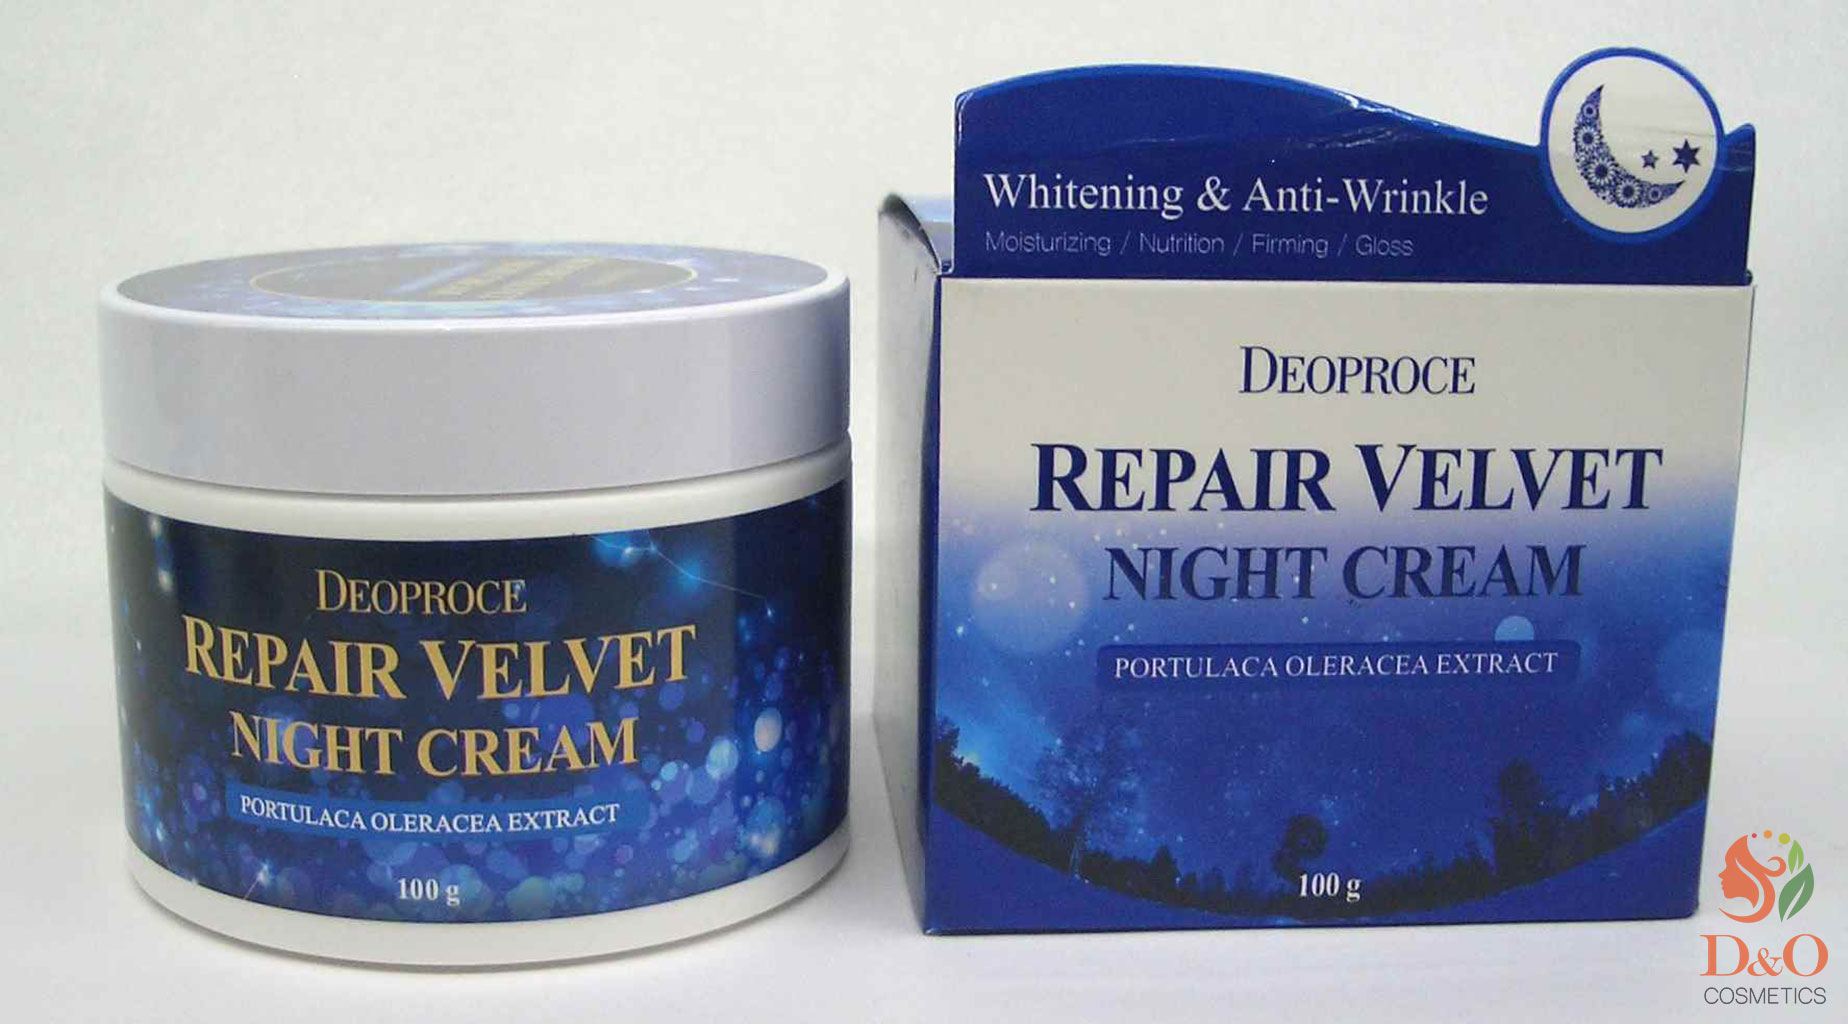 Крем для лица ночной восстанавливающий. DEOPROCE MOISTURE REPAIR VELVET NIGHT CREAM 100 гр.